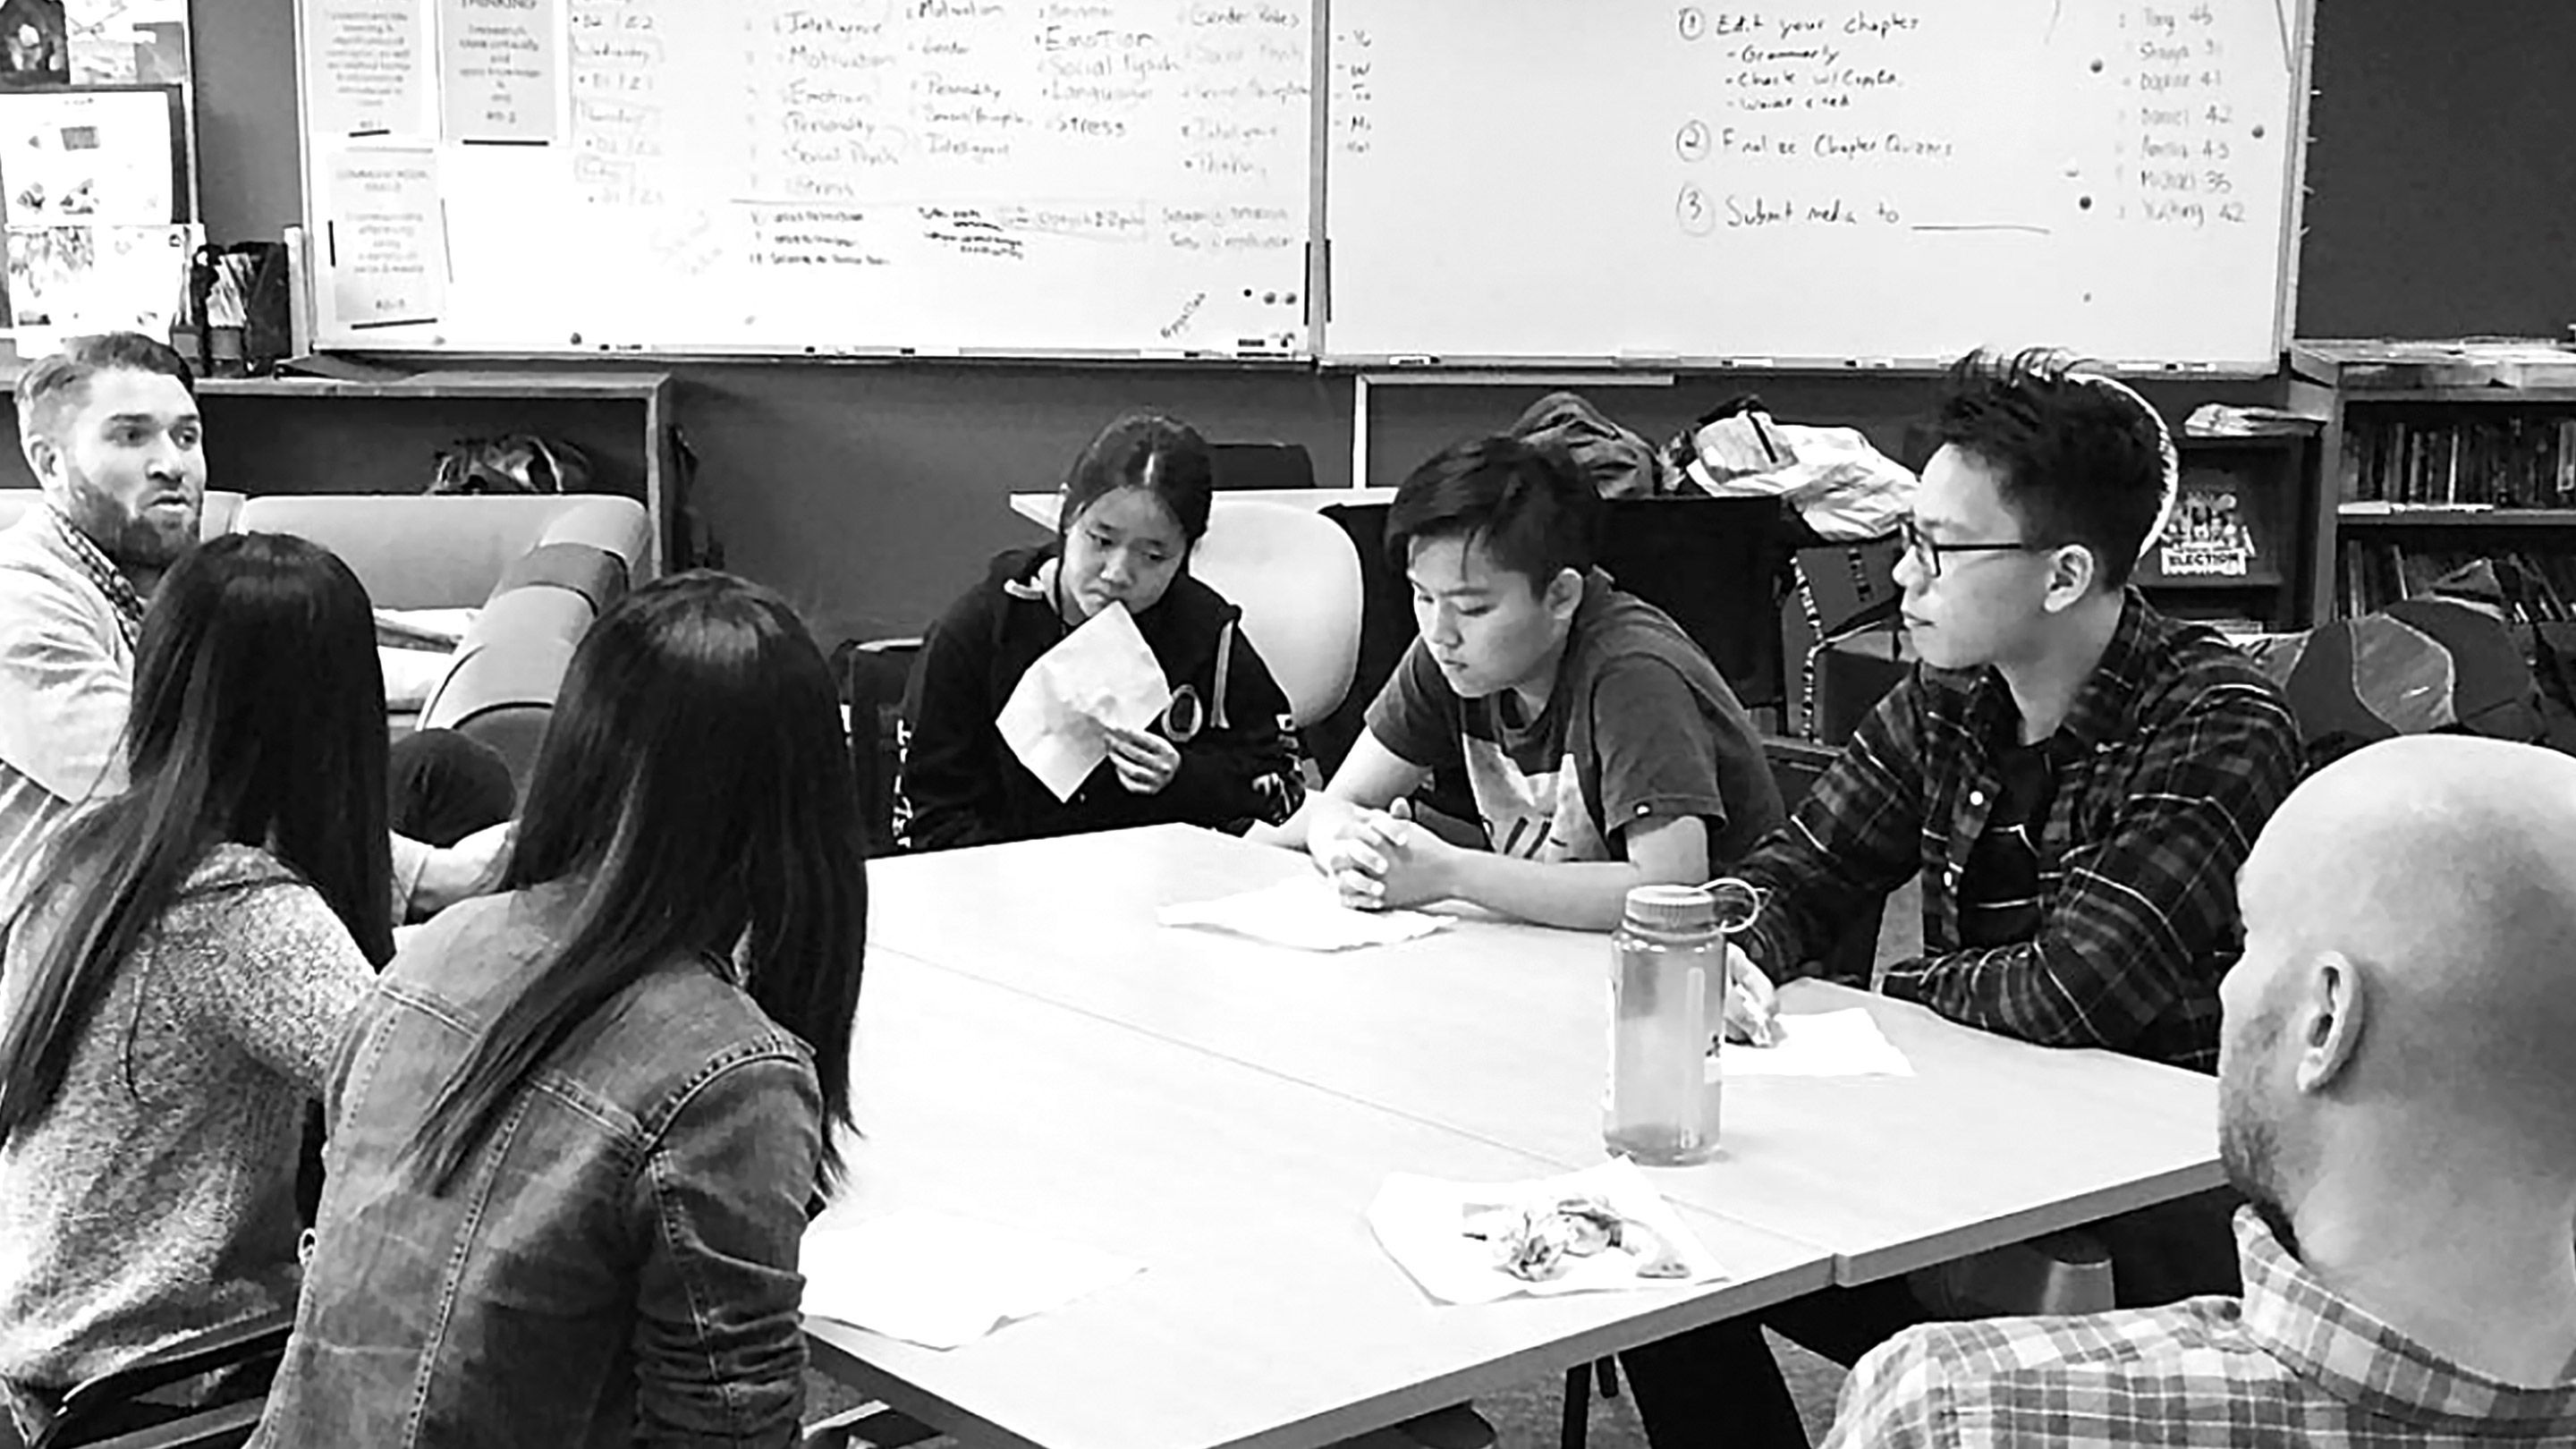 Students and teachers at the author's school sit at a table to discuss a project.